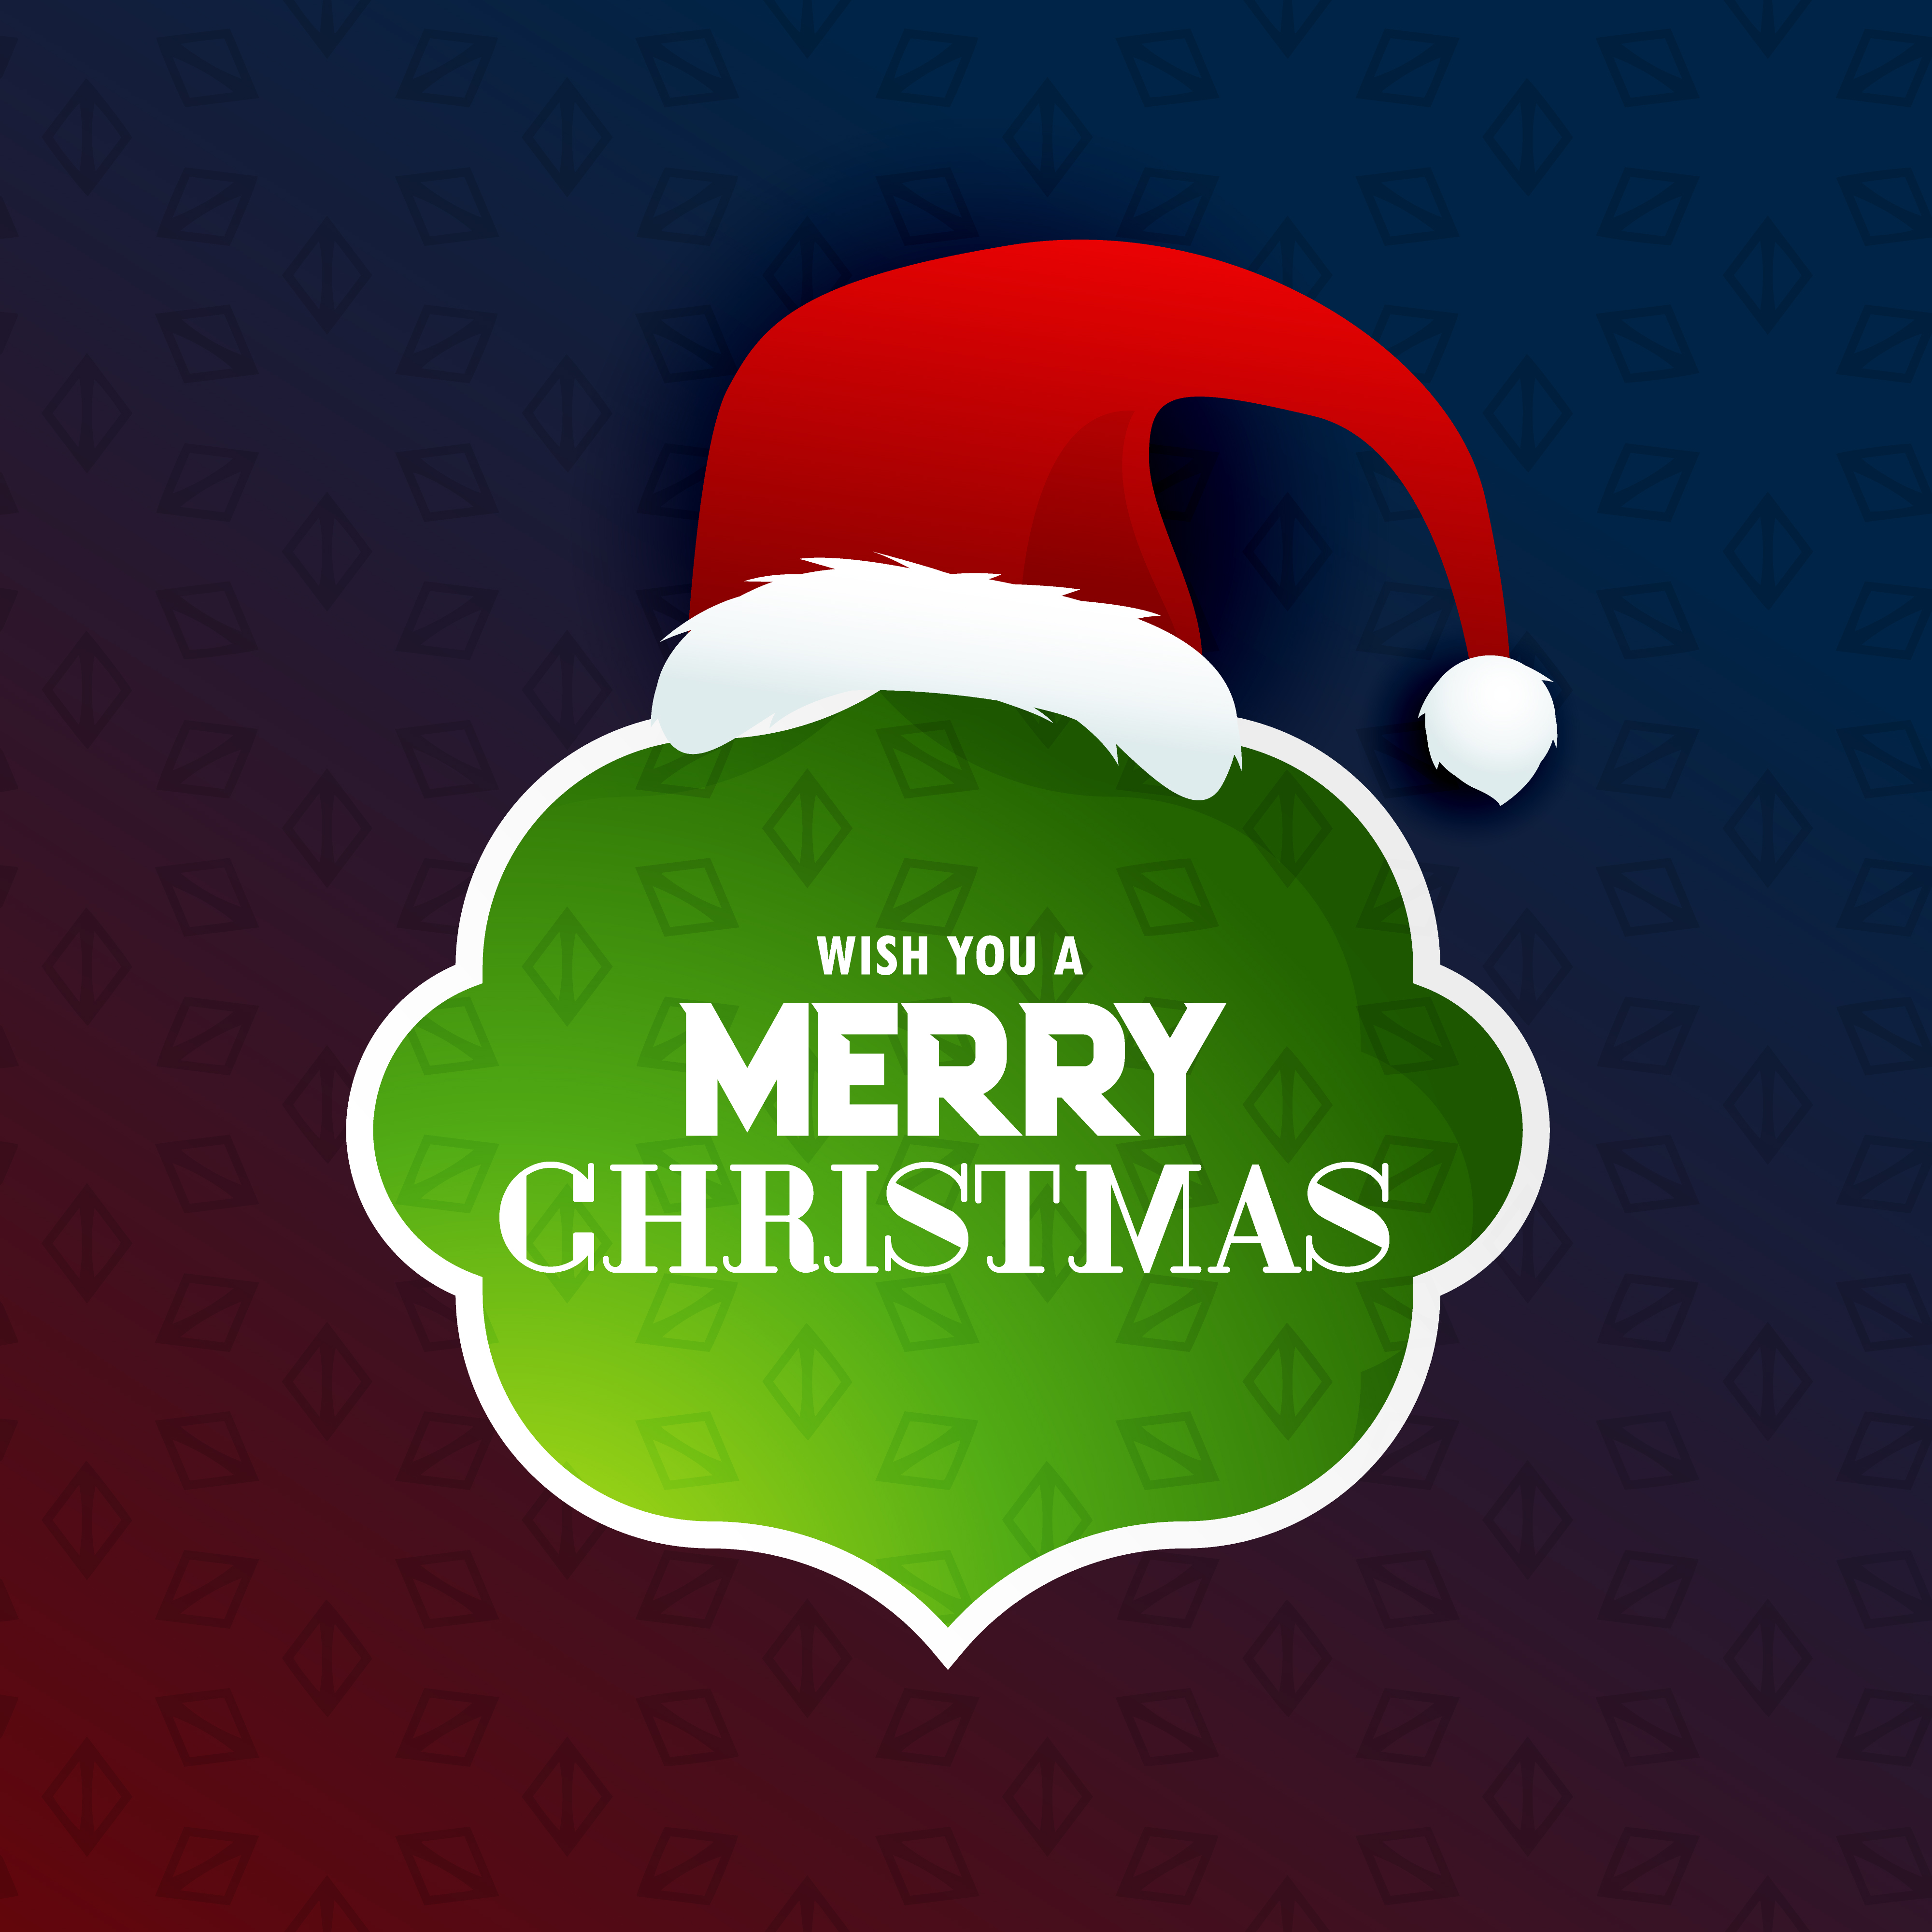 merry christmas text frame with santa claus design - Download Free ...